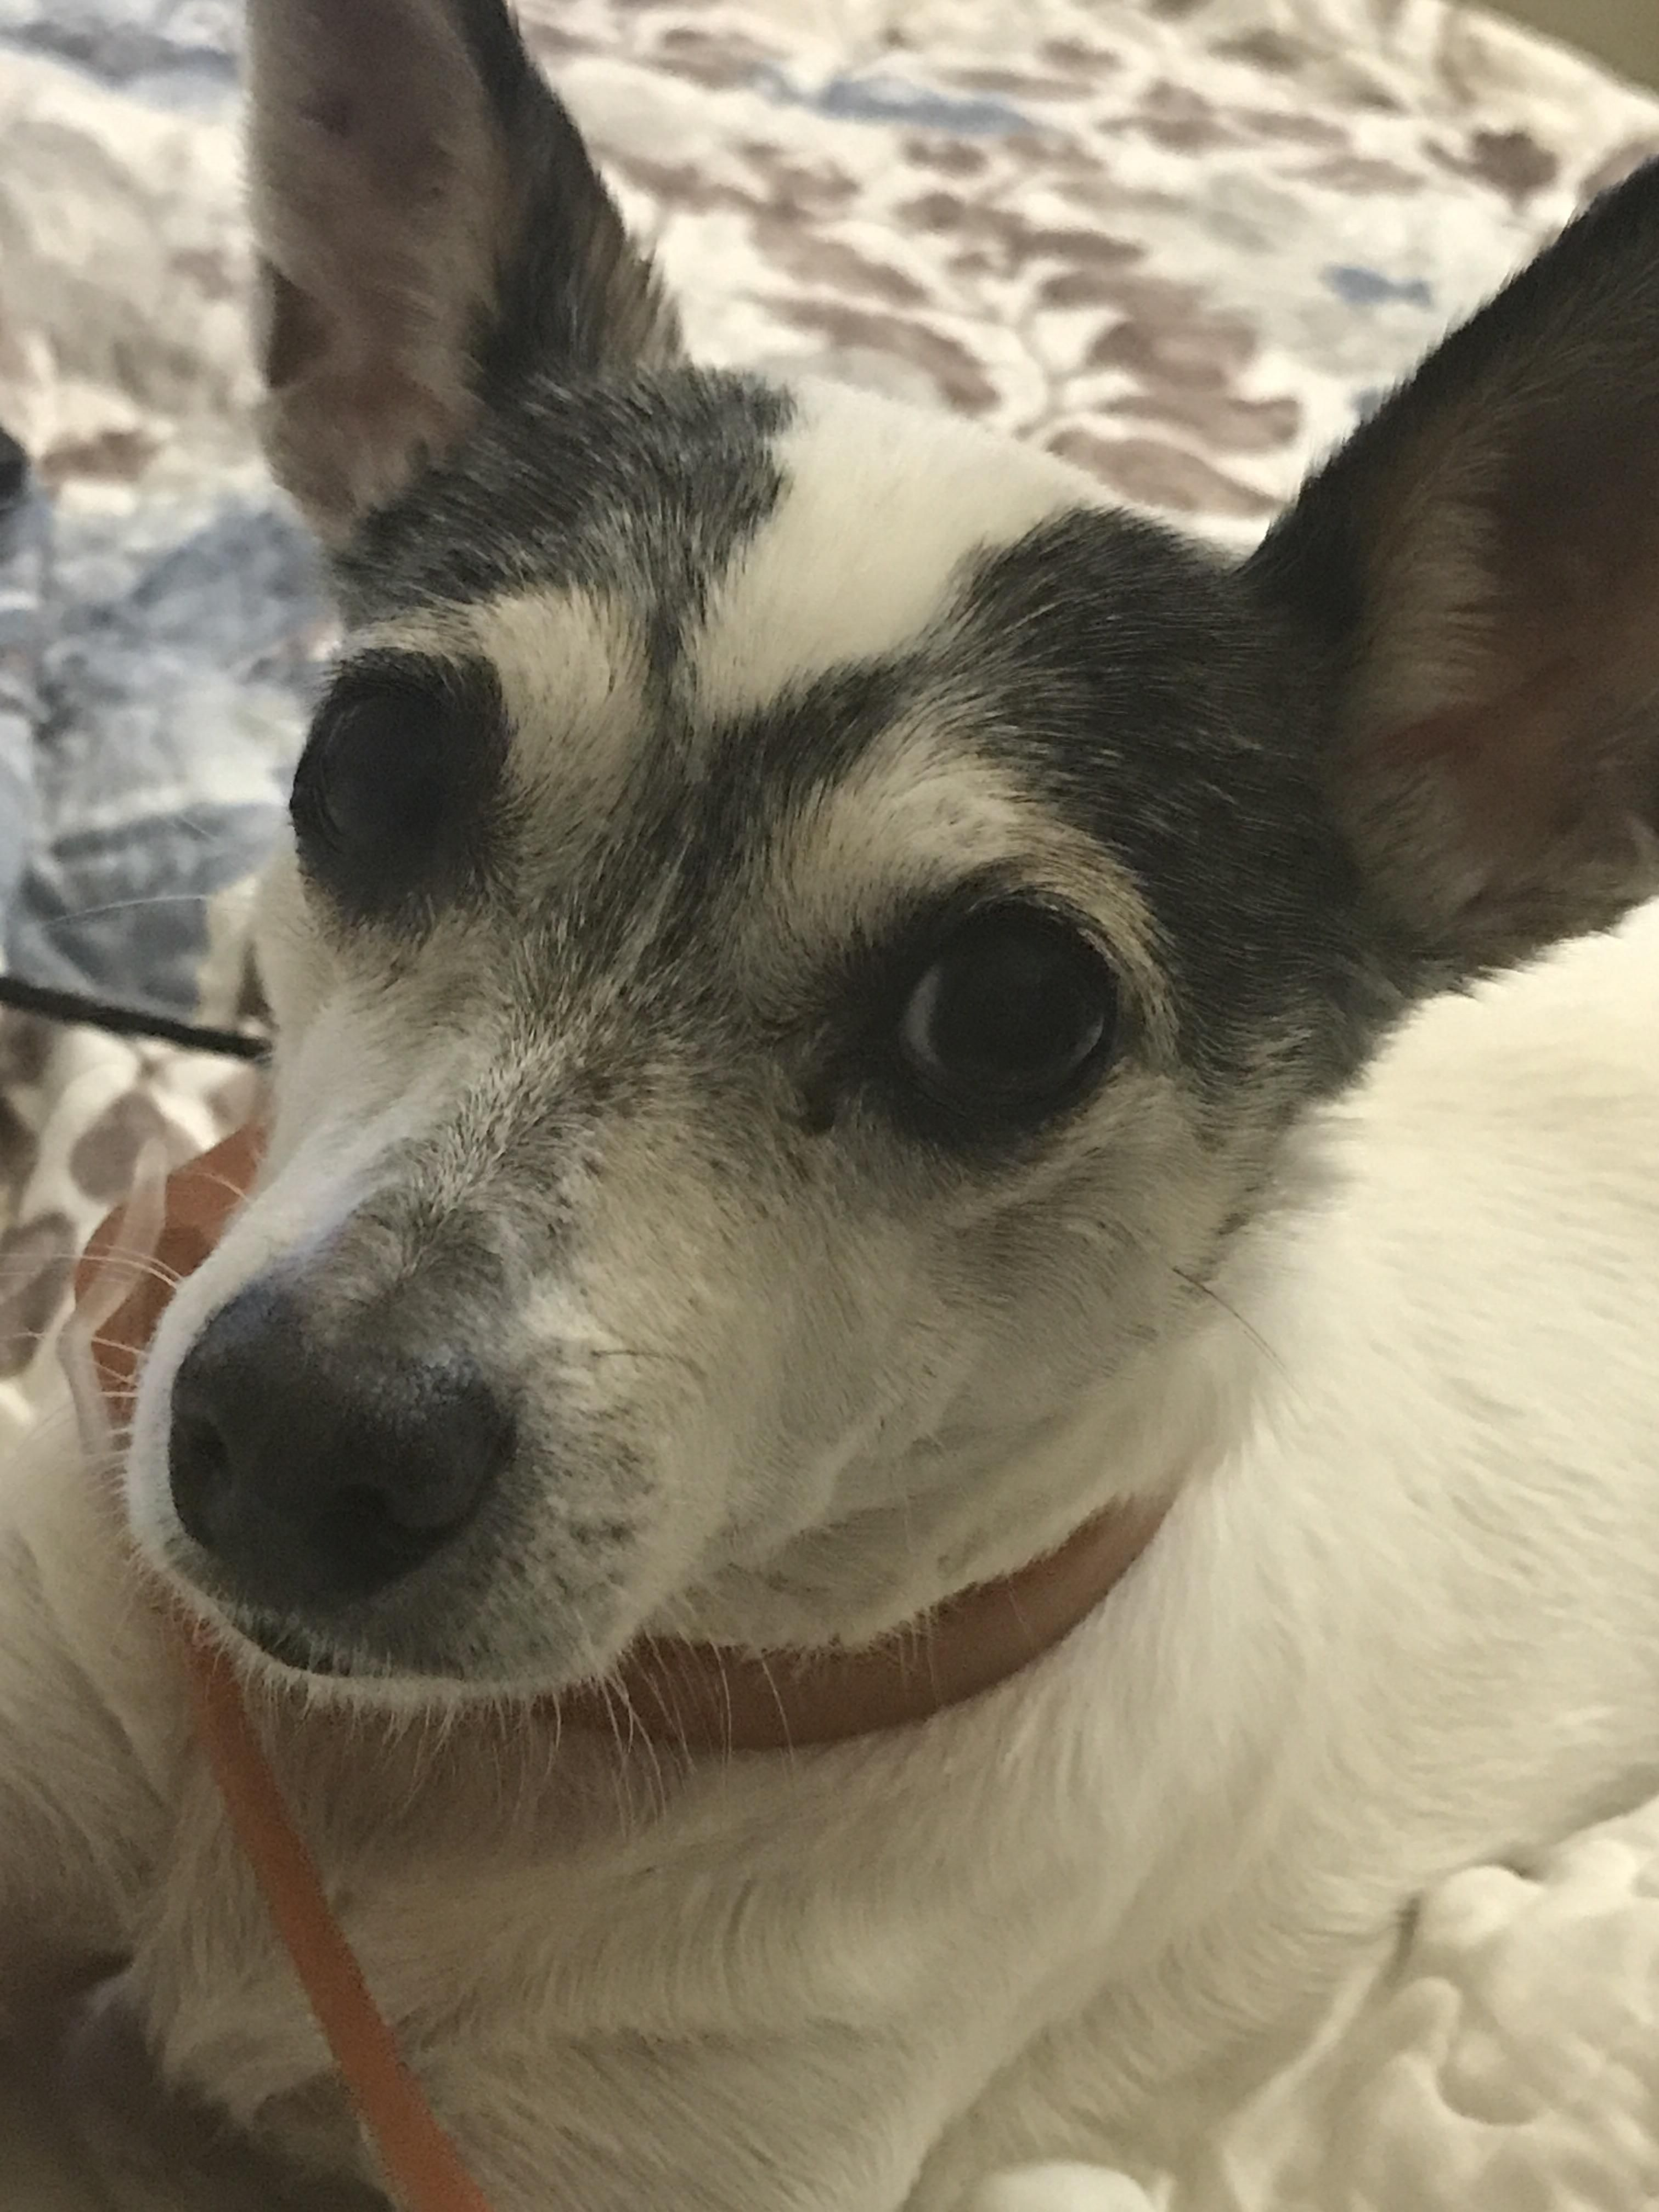 Hey raww meet pepper shes a 12 year old toy fox terrier